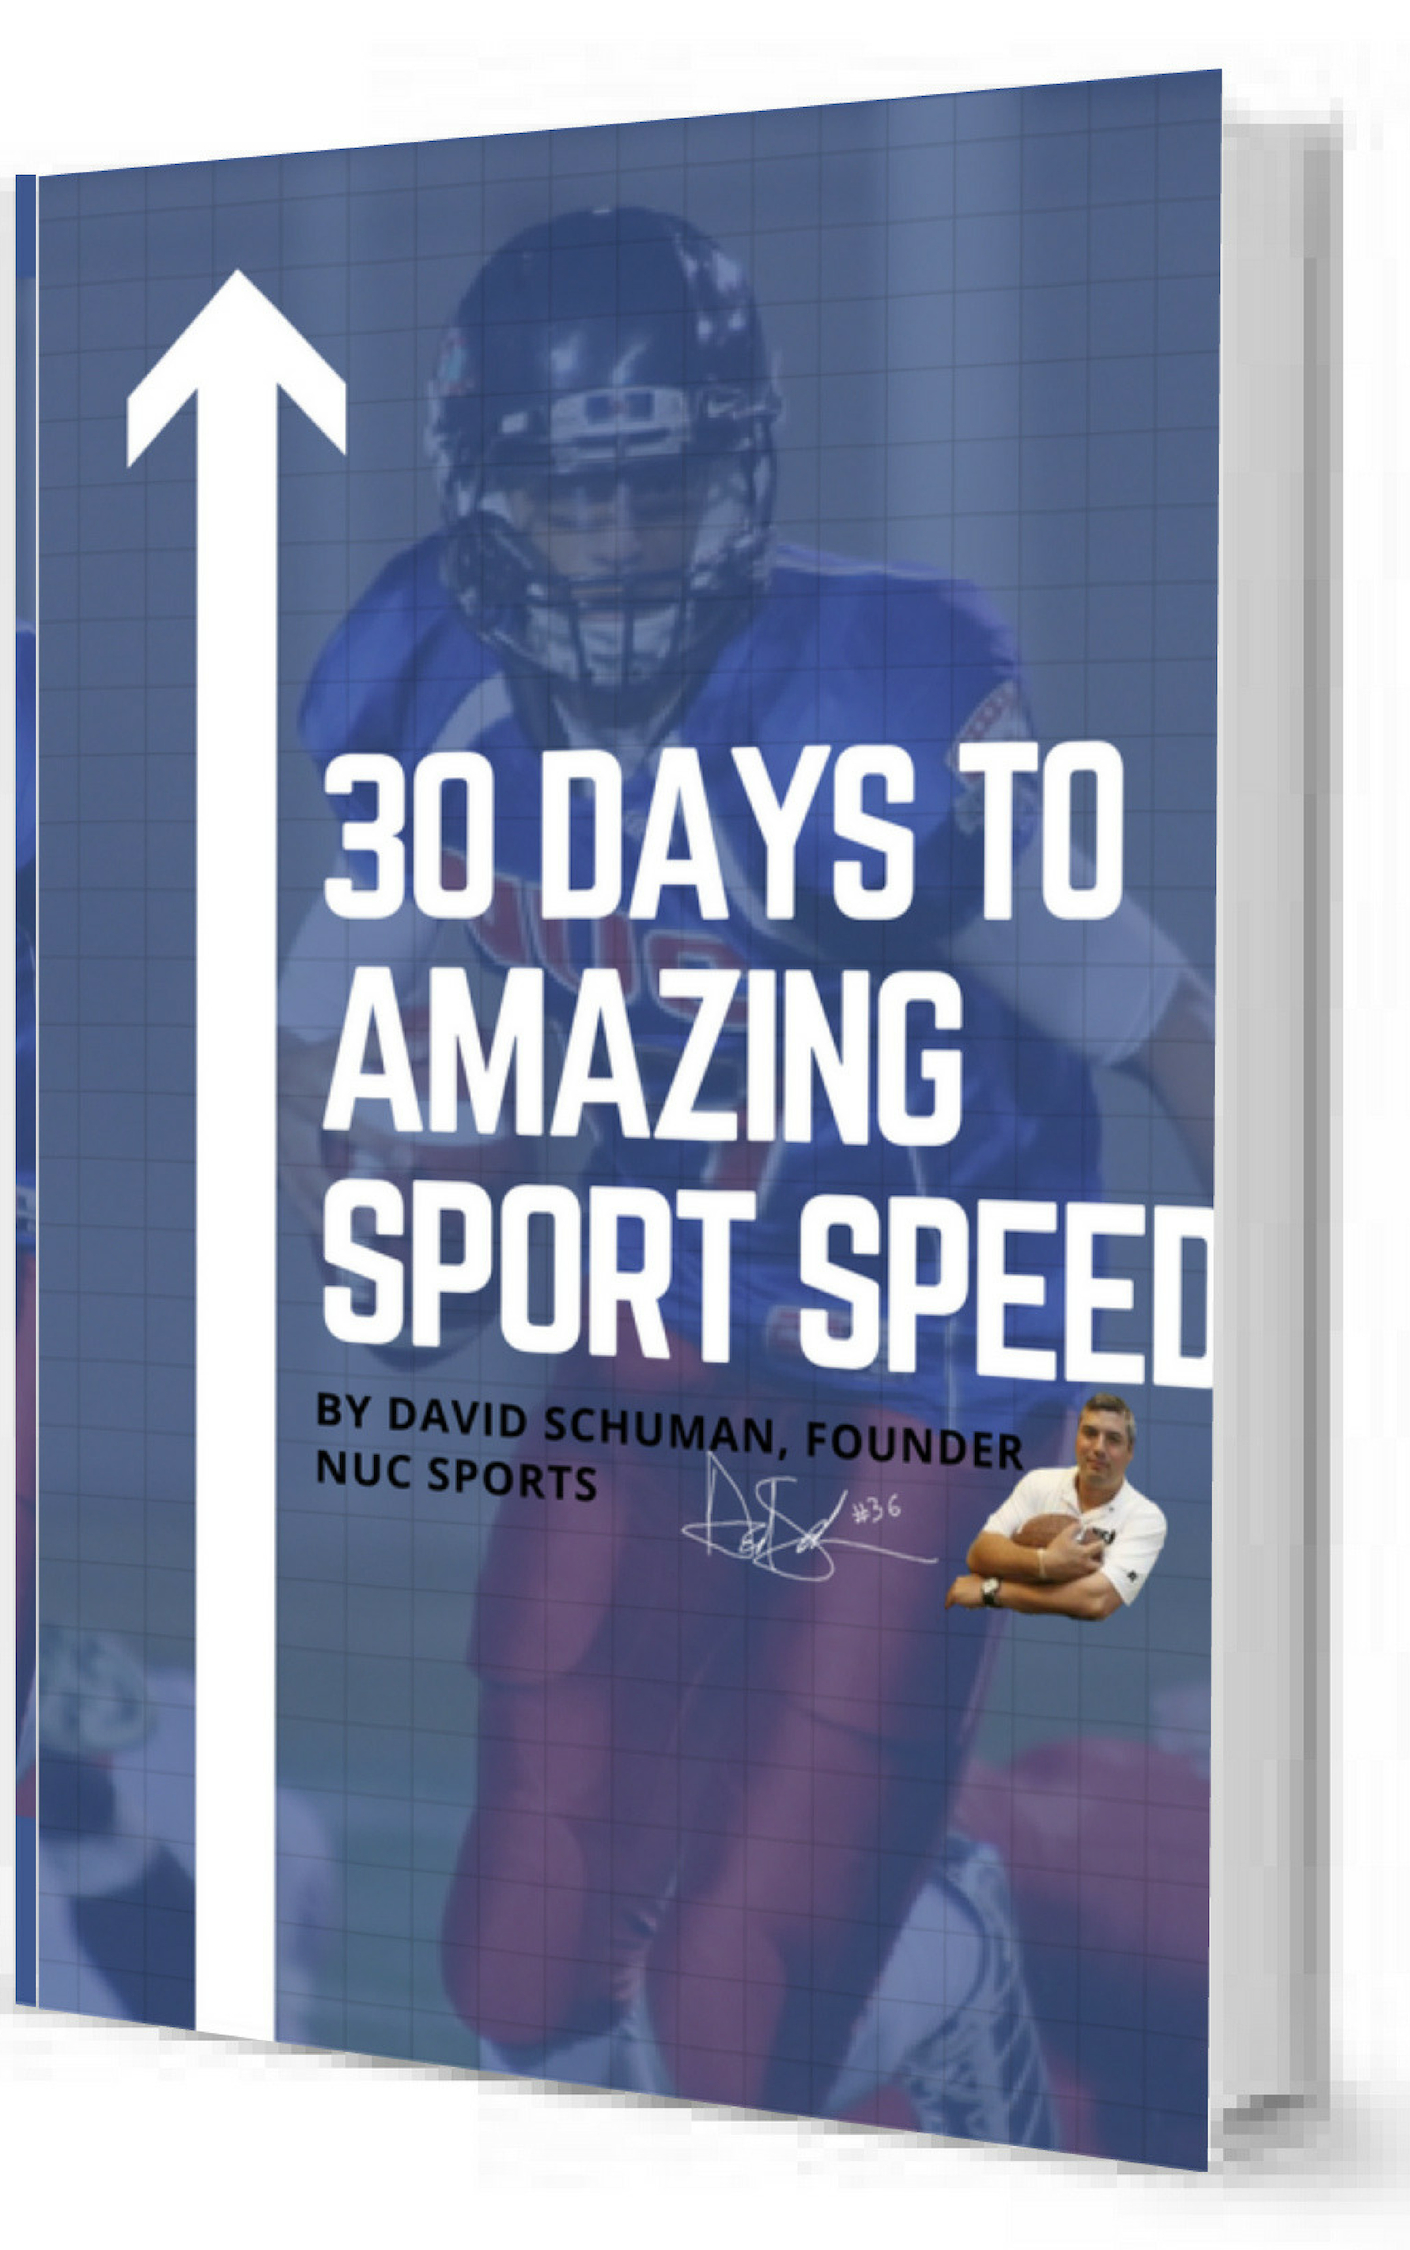 30 Days to Explosive Speed by David Schuman